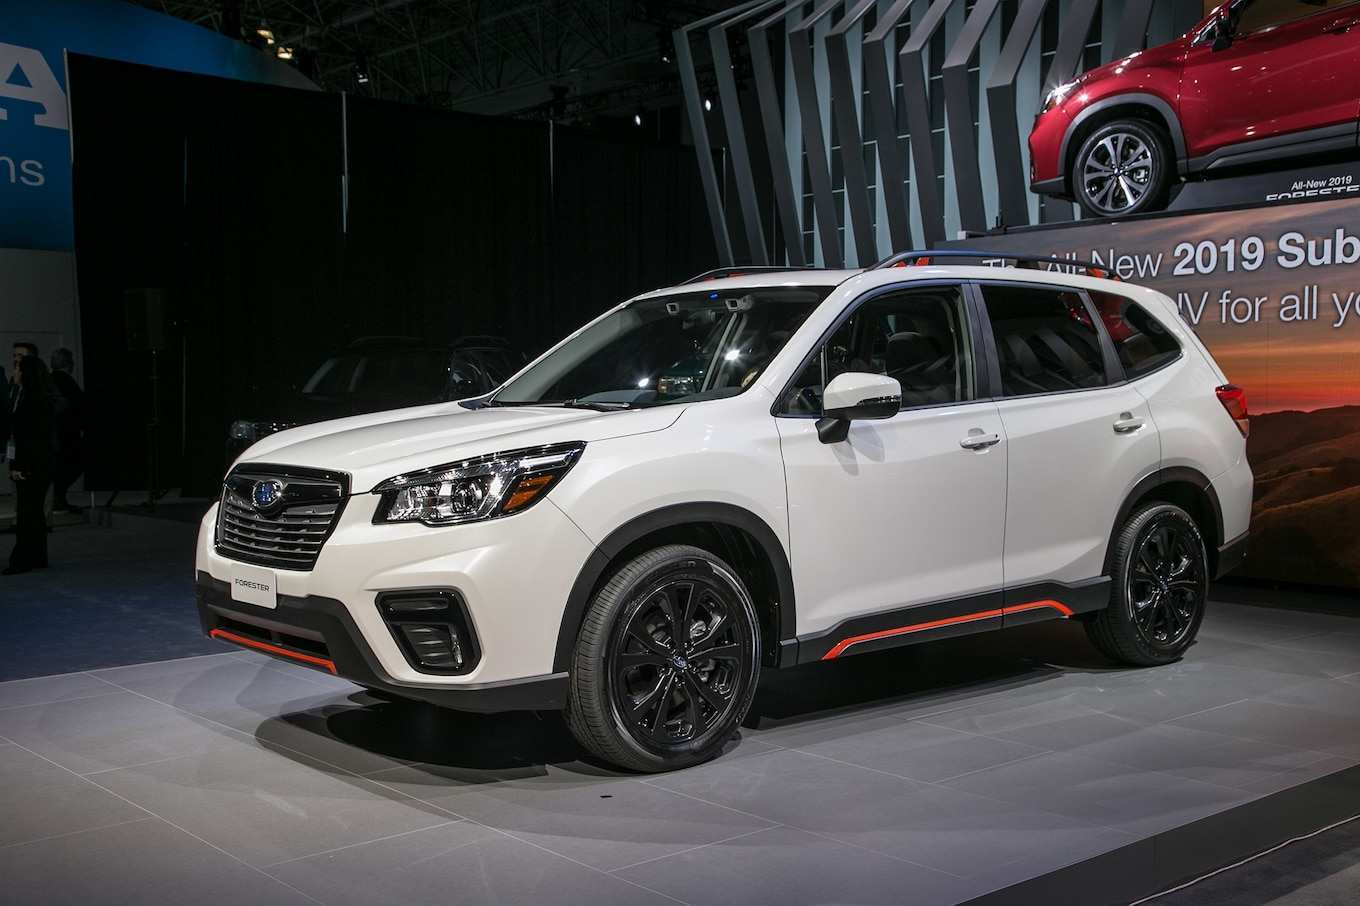 36 Great Dimensions Of 2020 Subaru Forester Pricing by Dimensions Of 2020 Subaru Forester